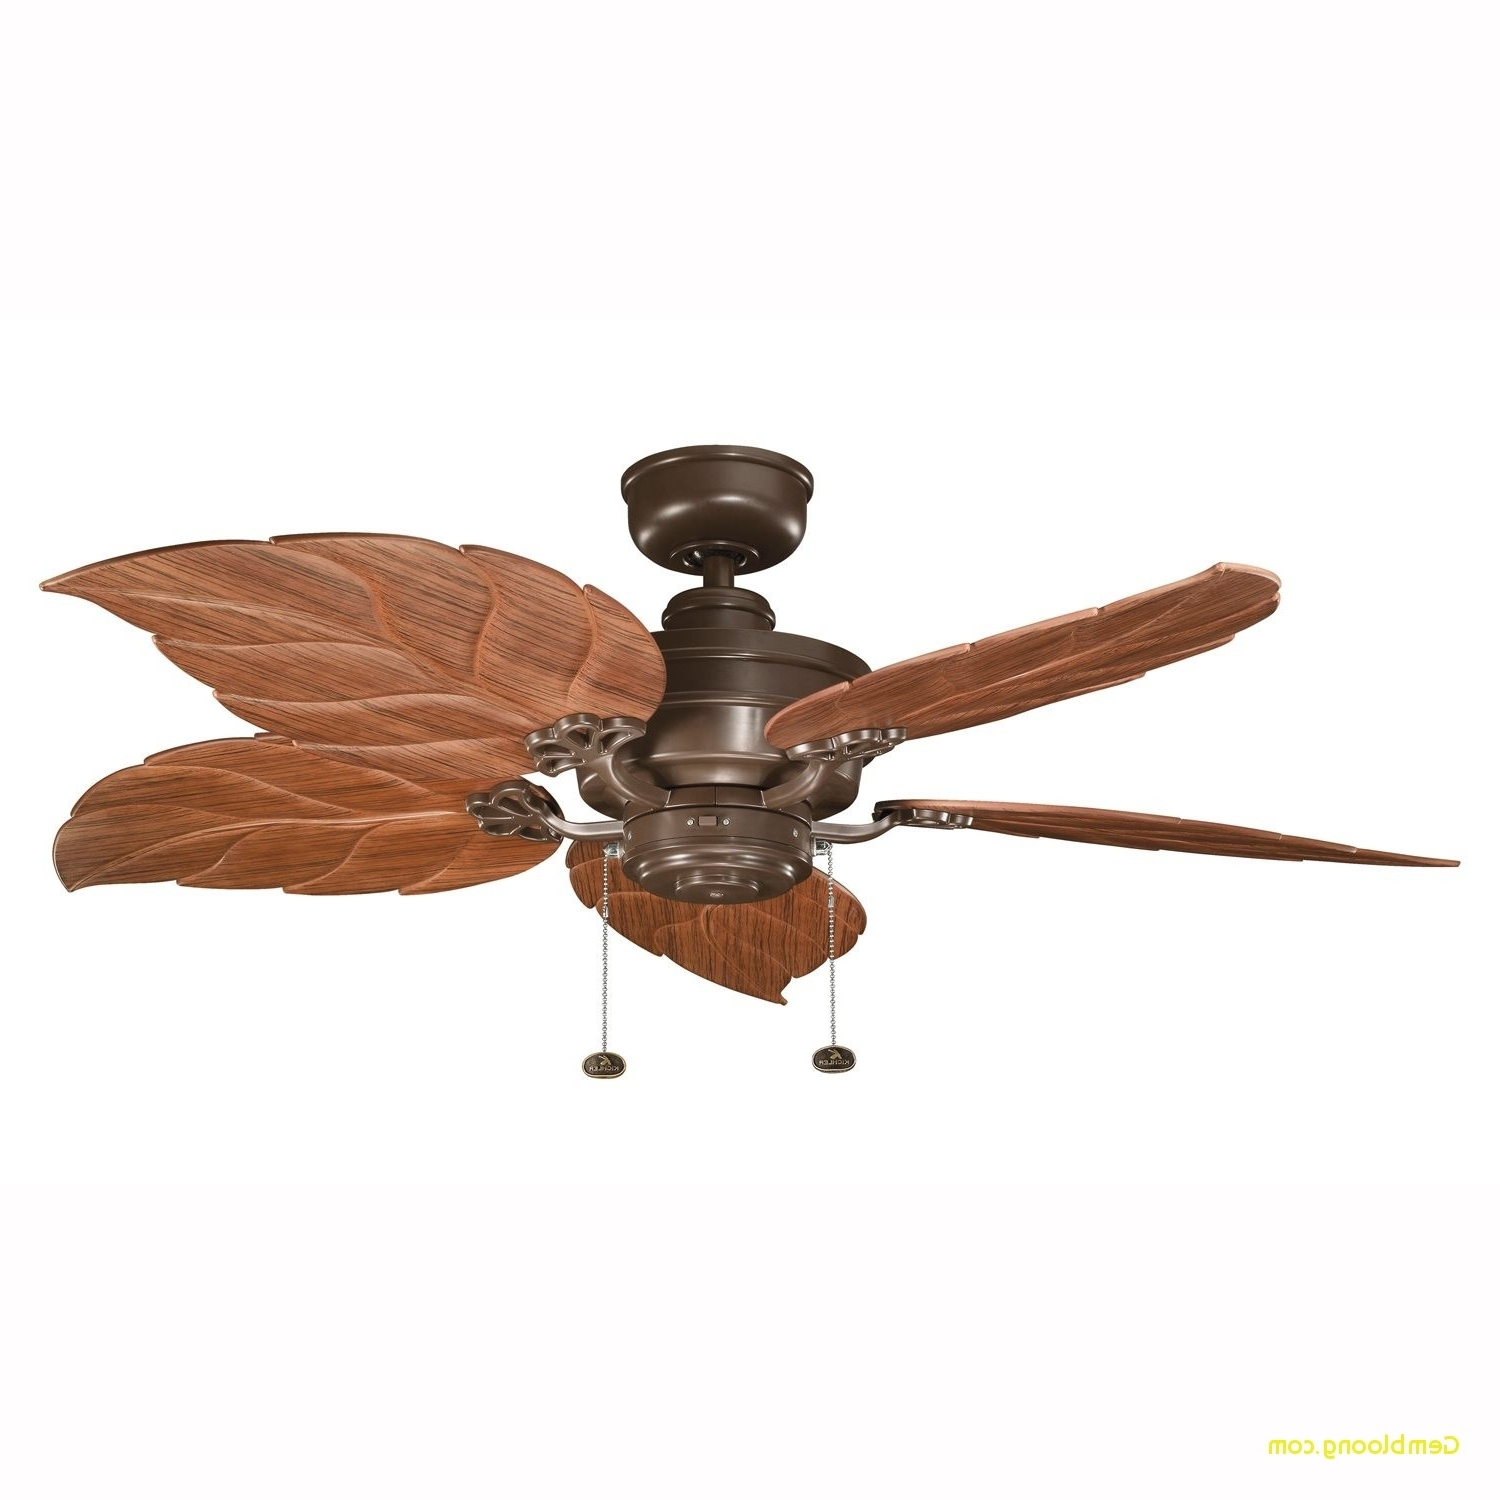 Bossconseil Pertaining To Outdoor Ceiling Fan With Bluetooth Speaker (View 20 of 20)